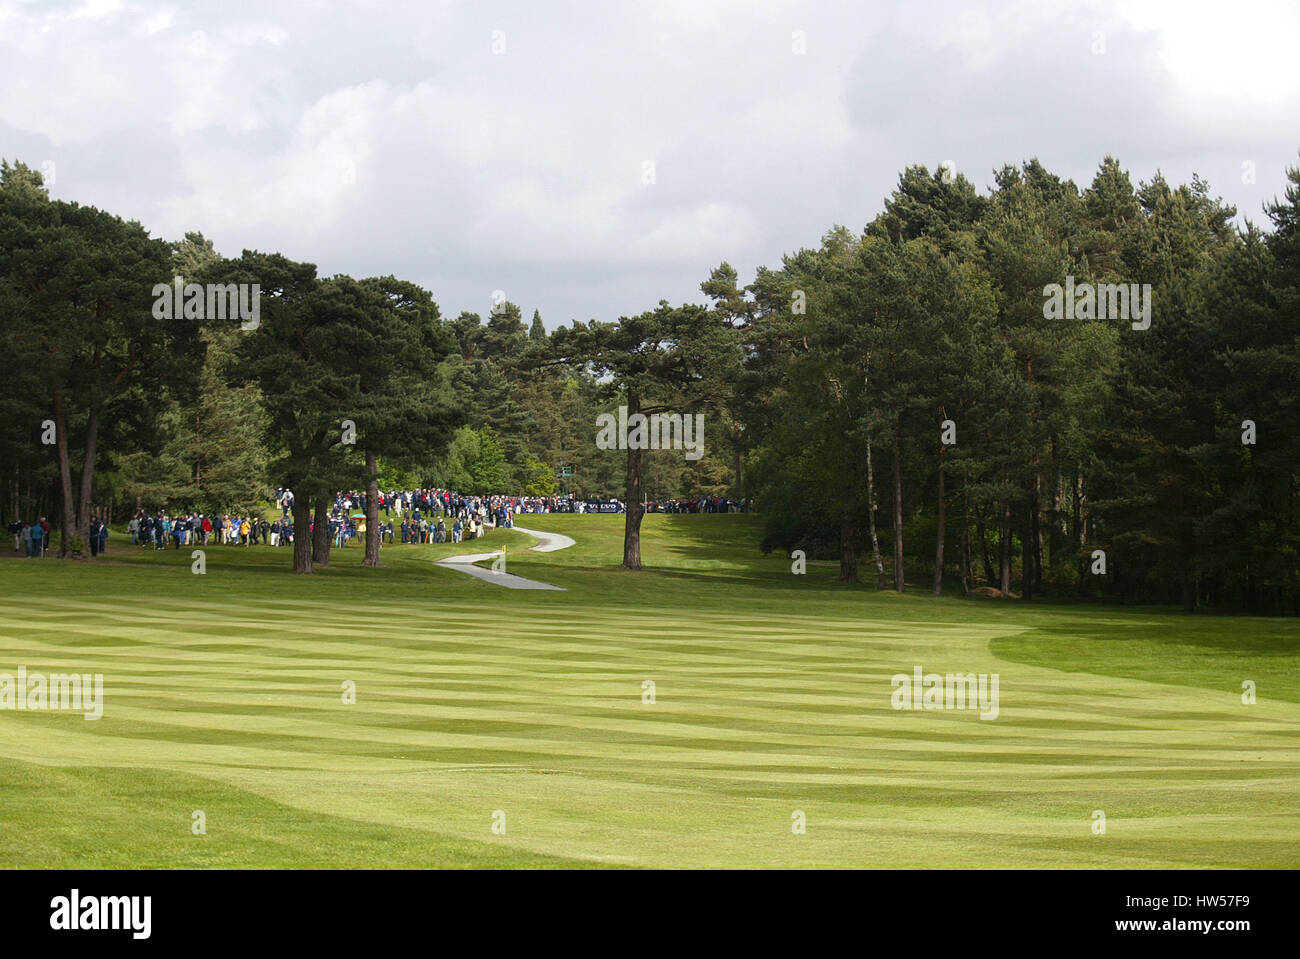 12TH FAIRWAY WEST COURSE WENTWORTH WENTWORTH GOLF CLUB VIRGINIA WATER ENGLAND 25 May 2002 - Stock Image